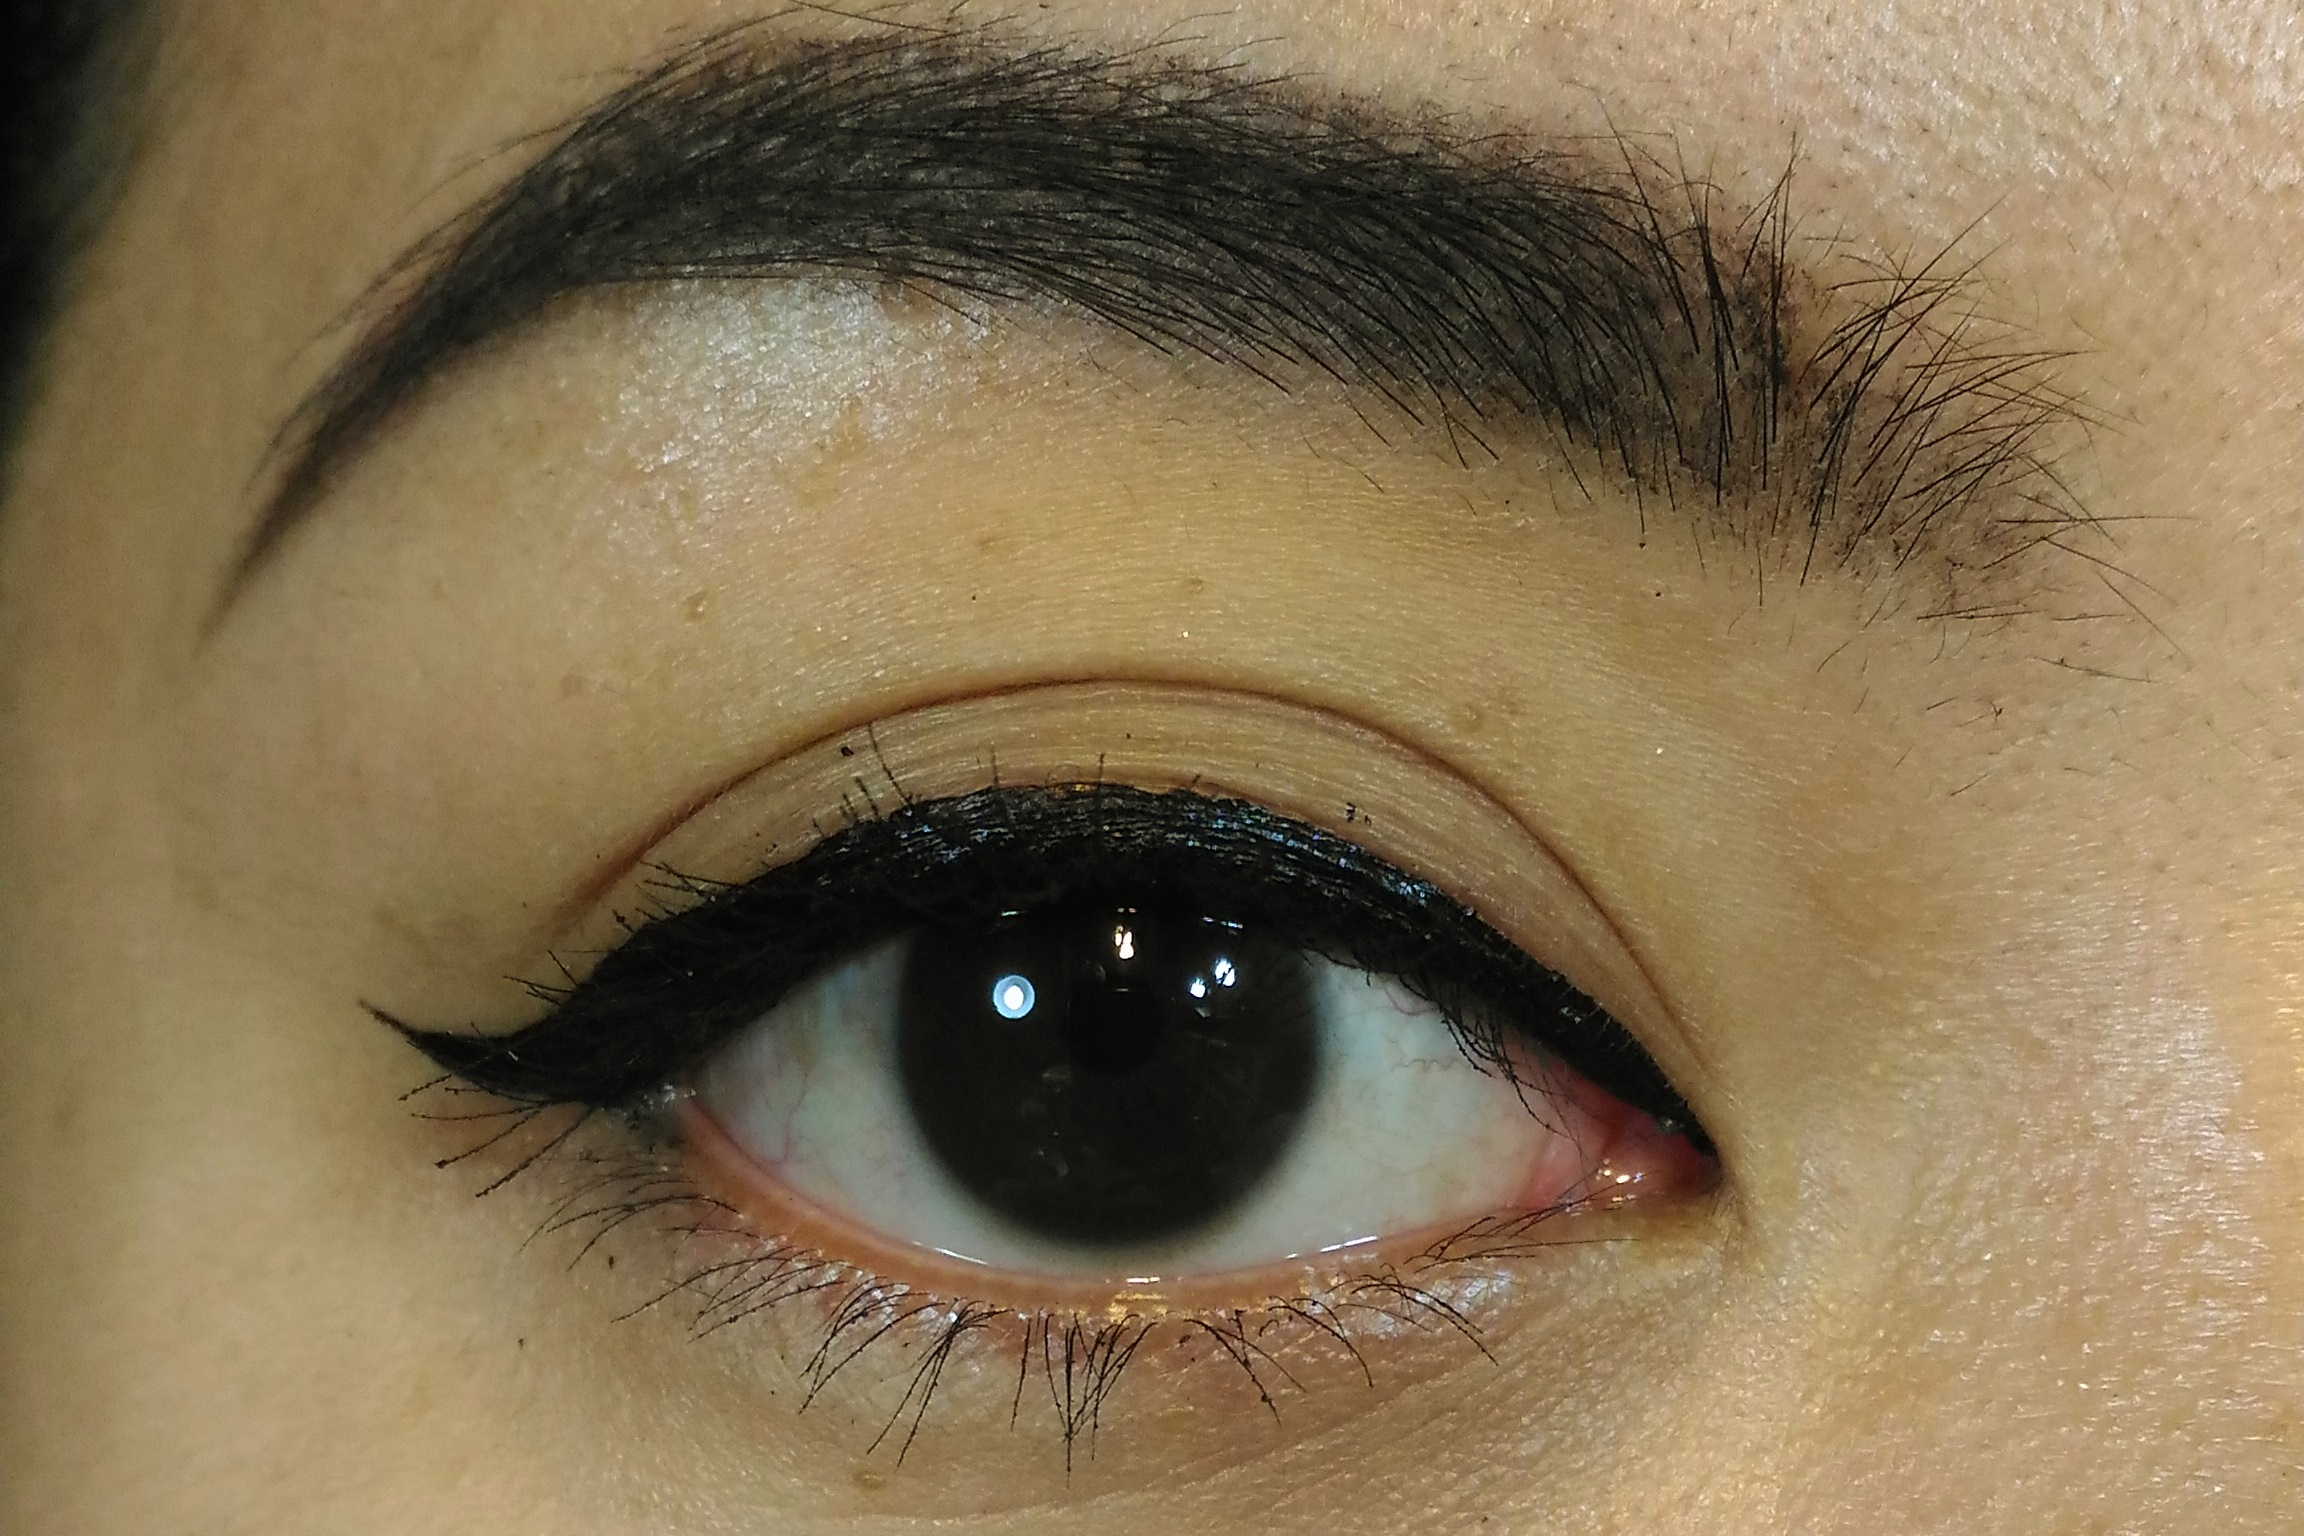 Lt Pro Longer Wear Eyeliner Review And Swatch Hasgoodlook Putar P 20160619 055146